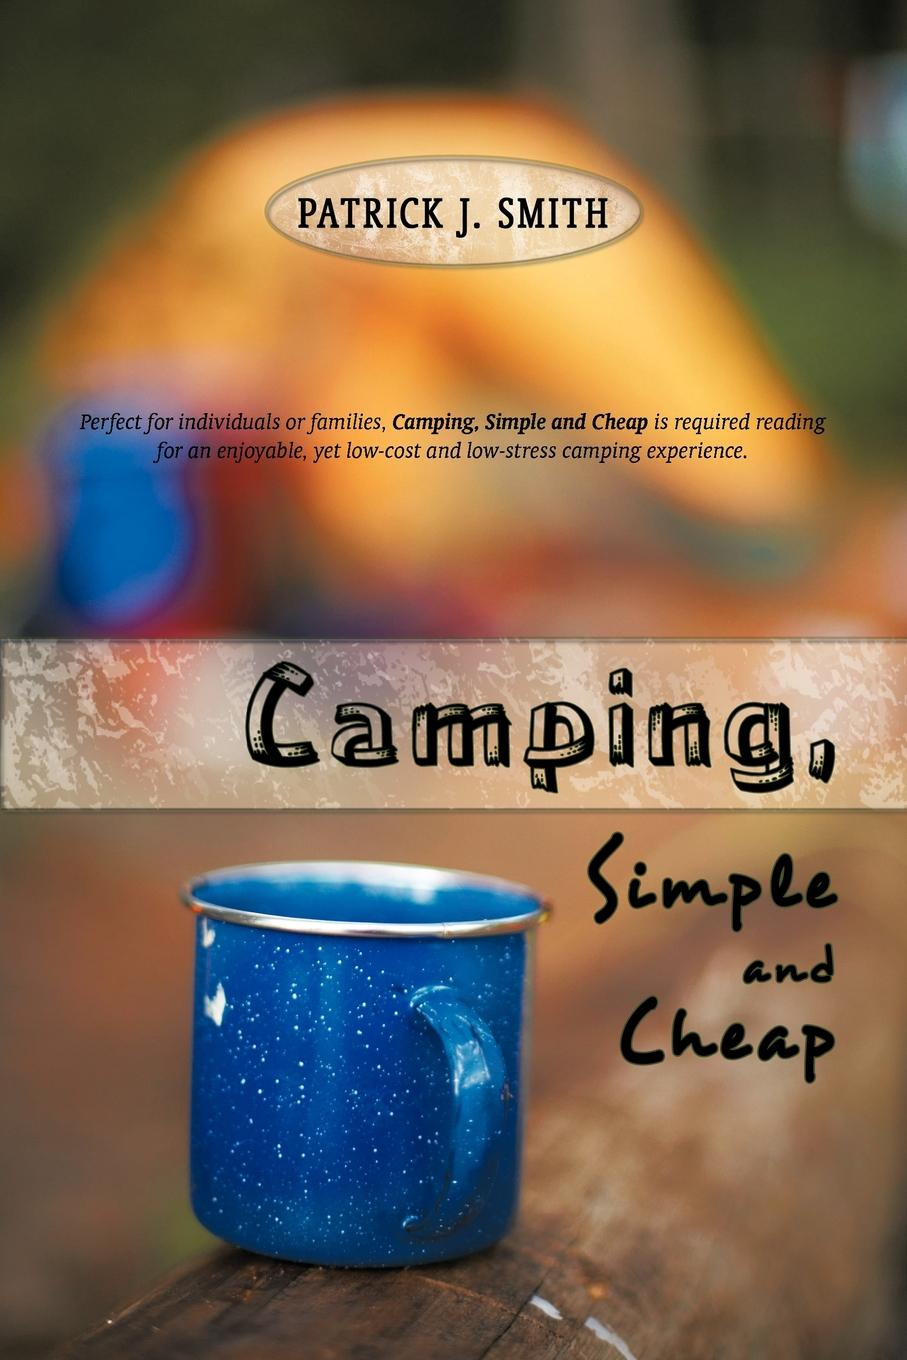 J. Smith Patrick J. Smith, Patrick J. Smith Camping, Simple and Cheap цена